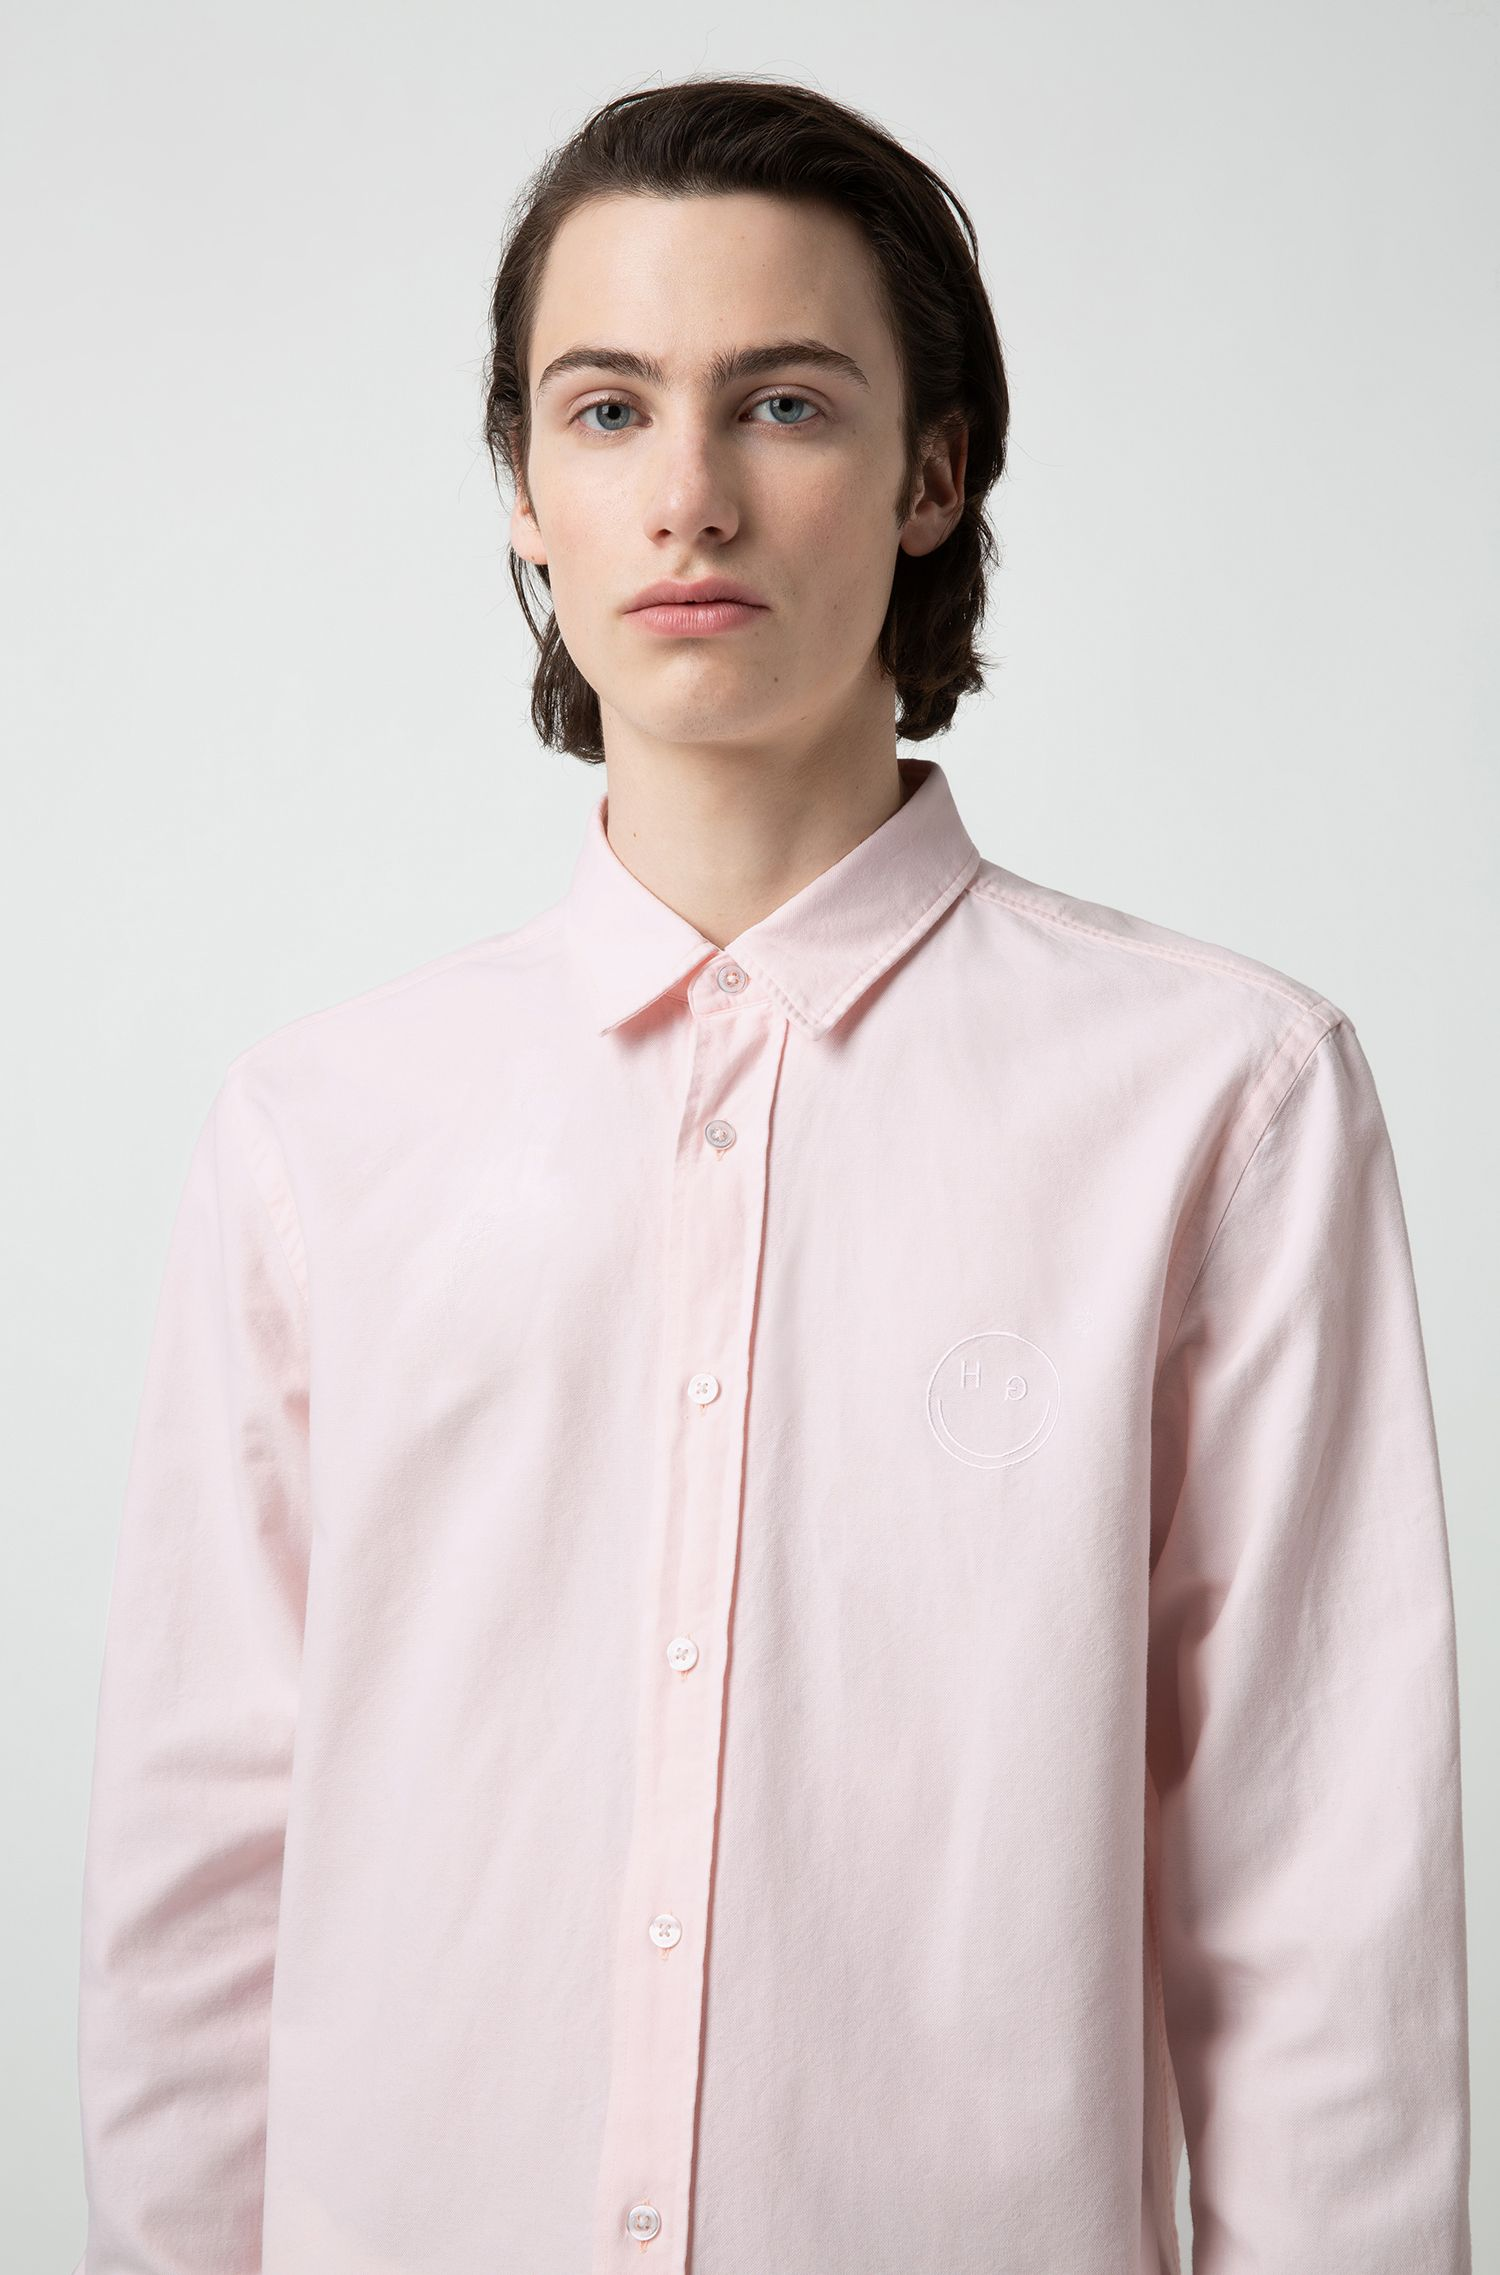 Relaxed-fit Oxford shirt with smiley-face embroidery, light pink